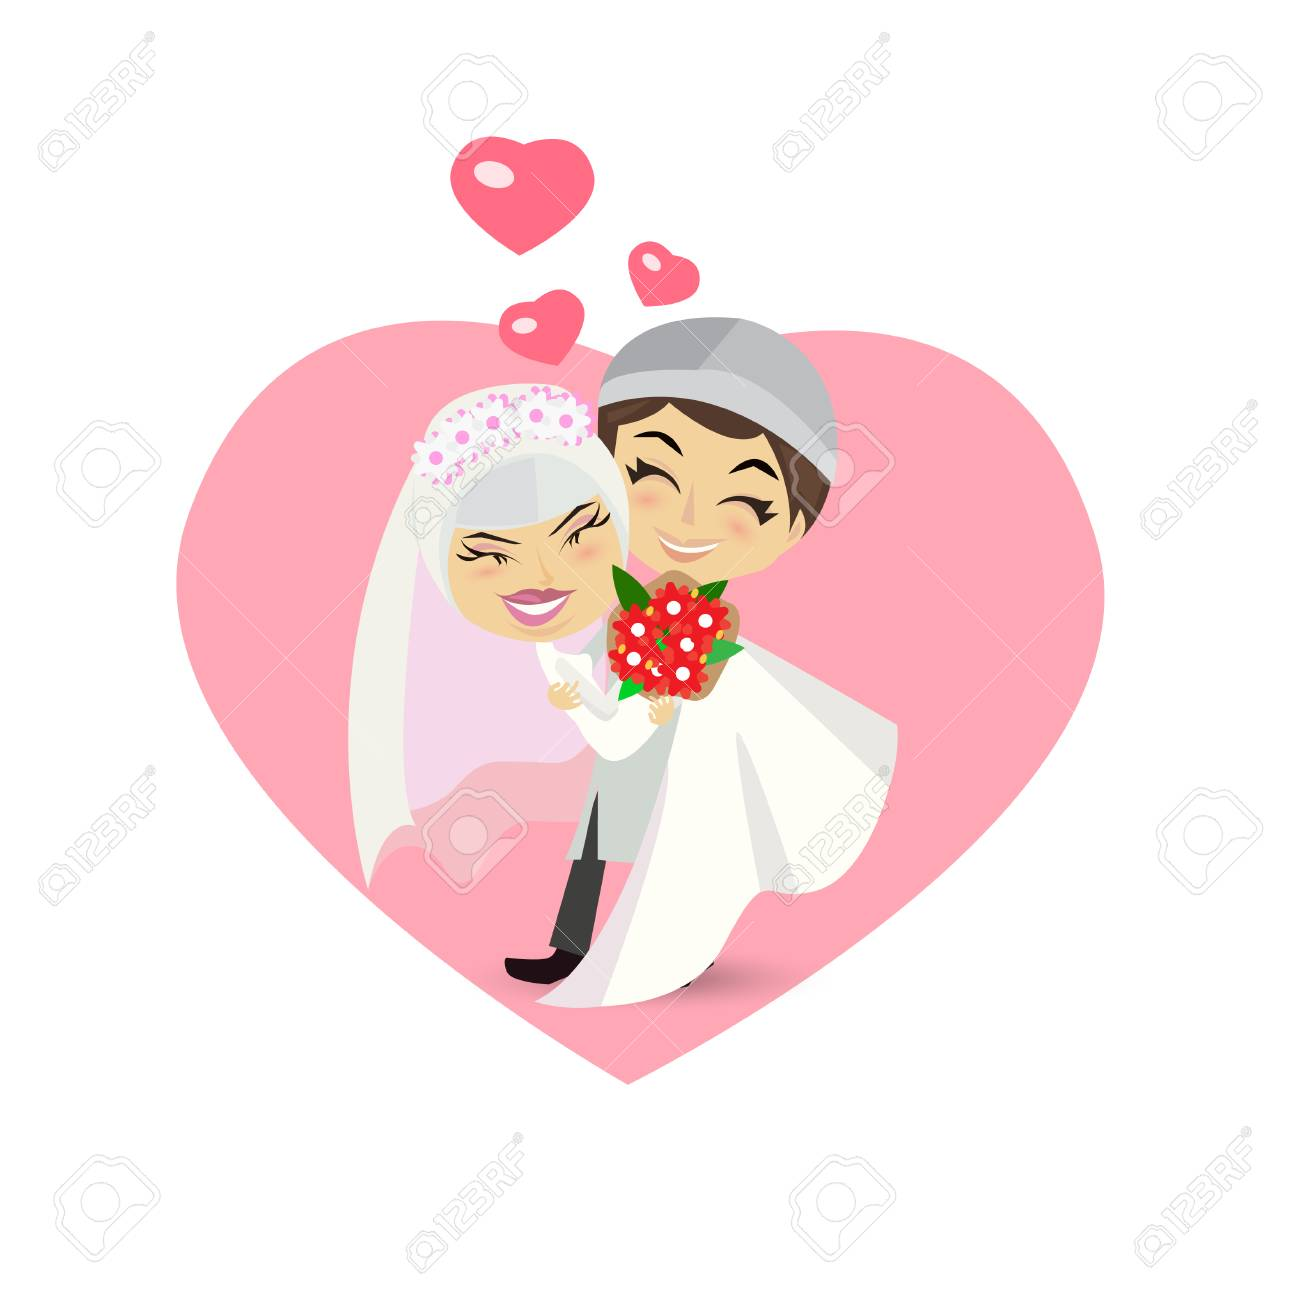 Muslim Wedding Couple Isolated On Heart Background. Royalty Free ...